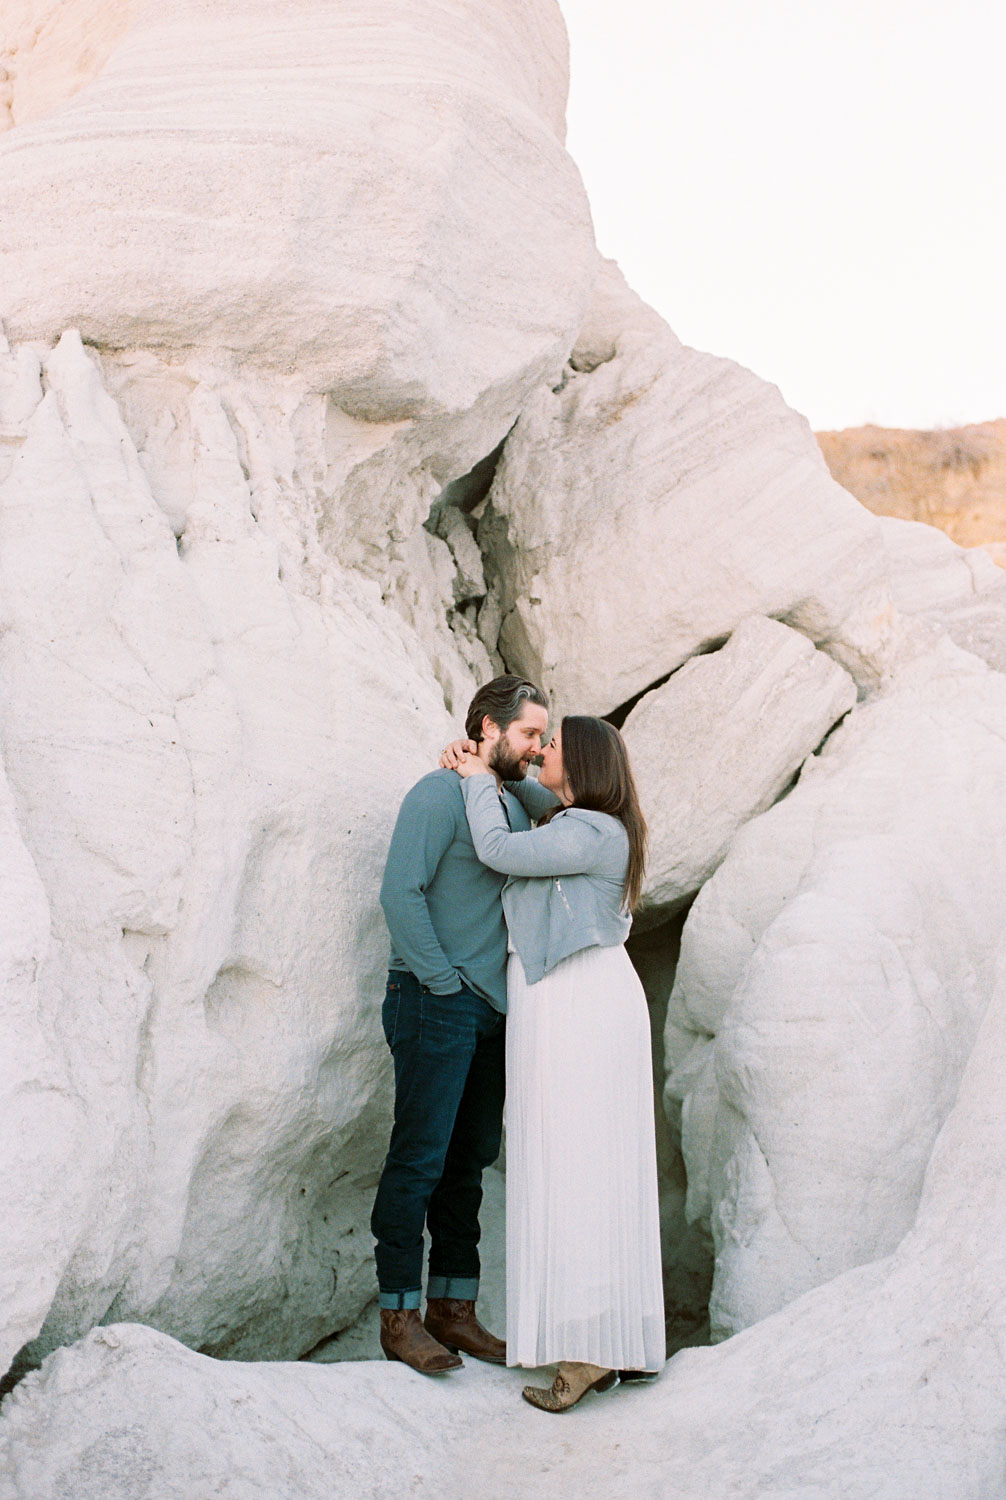 Engaged couple embraces in the landscape of Colorado's Paint Mines, one of the best locations for engagement photos near Denver.